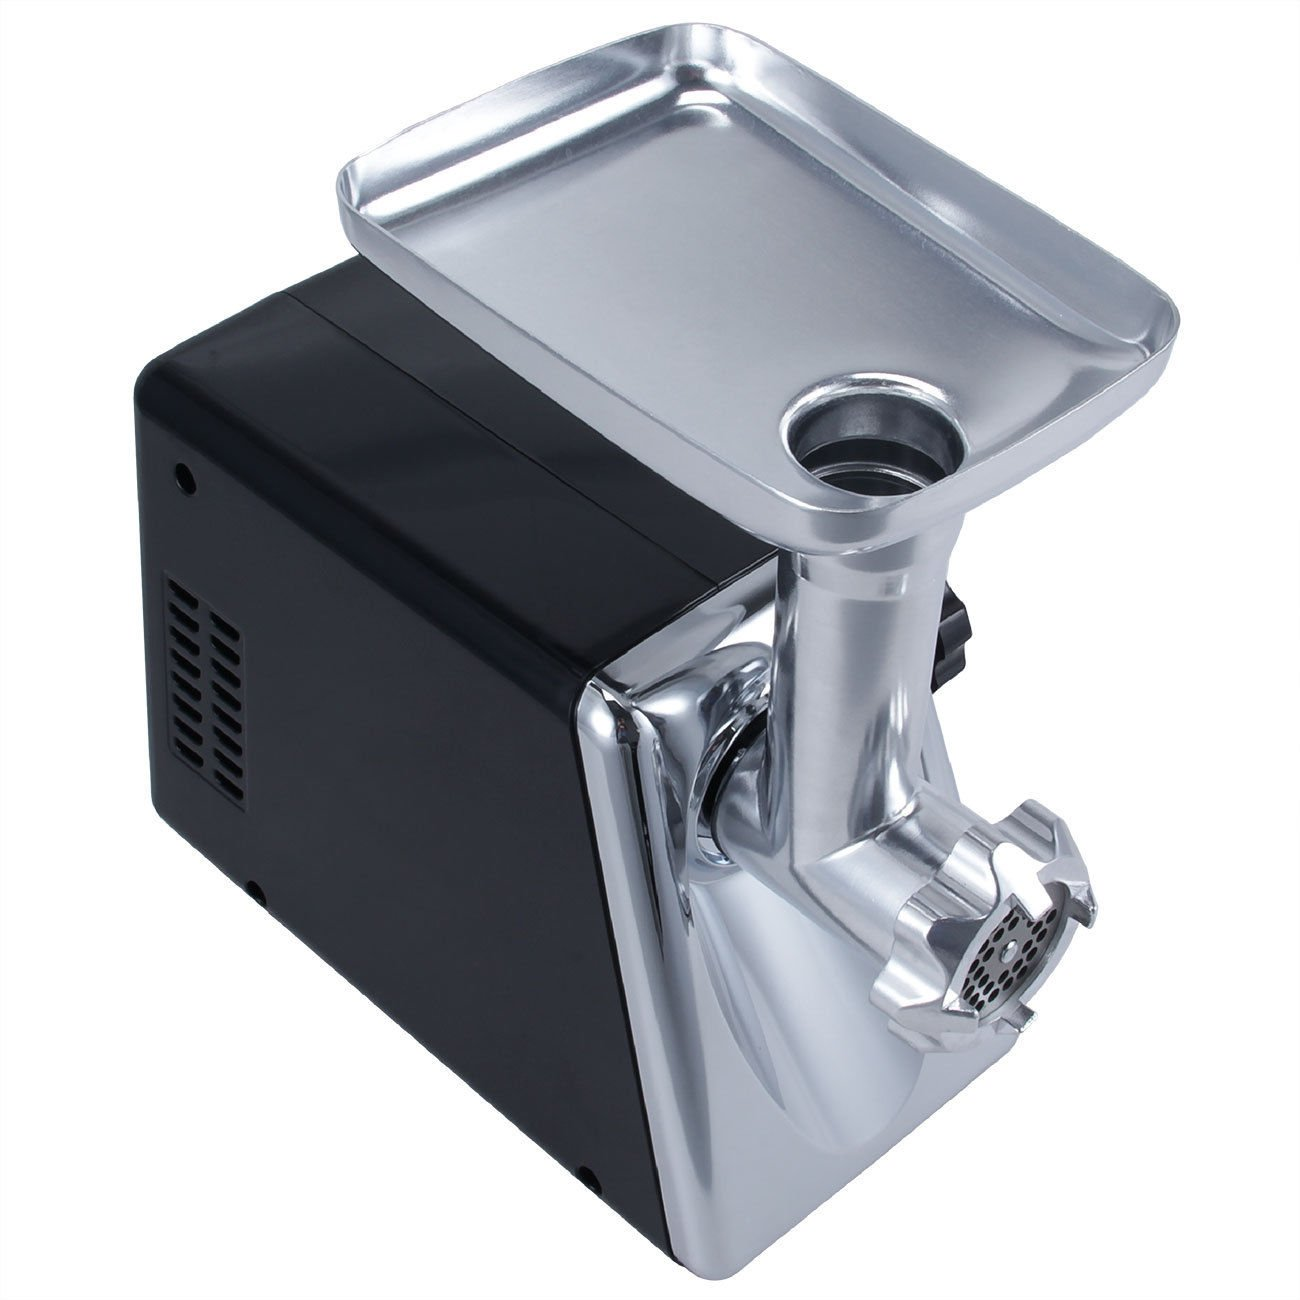 Electric Meat Grinder Stainless Steel Sausage 3 Blade, 1300W